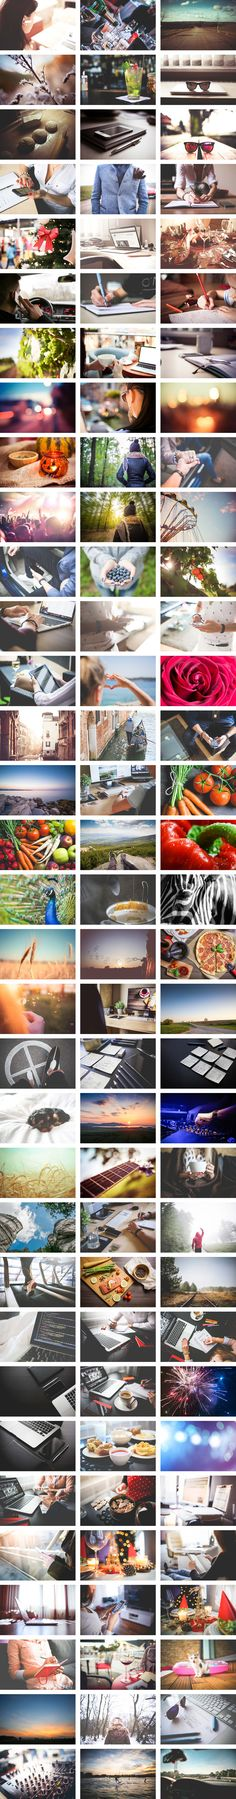 When Viktor Hanáček started designing for the Web, he struggled to find good stock images, so he started using his own photos. They were so popular that he st